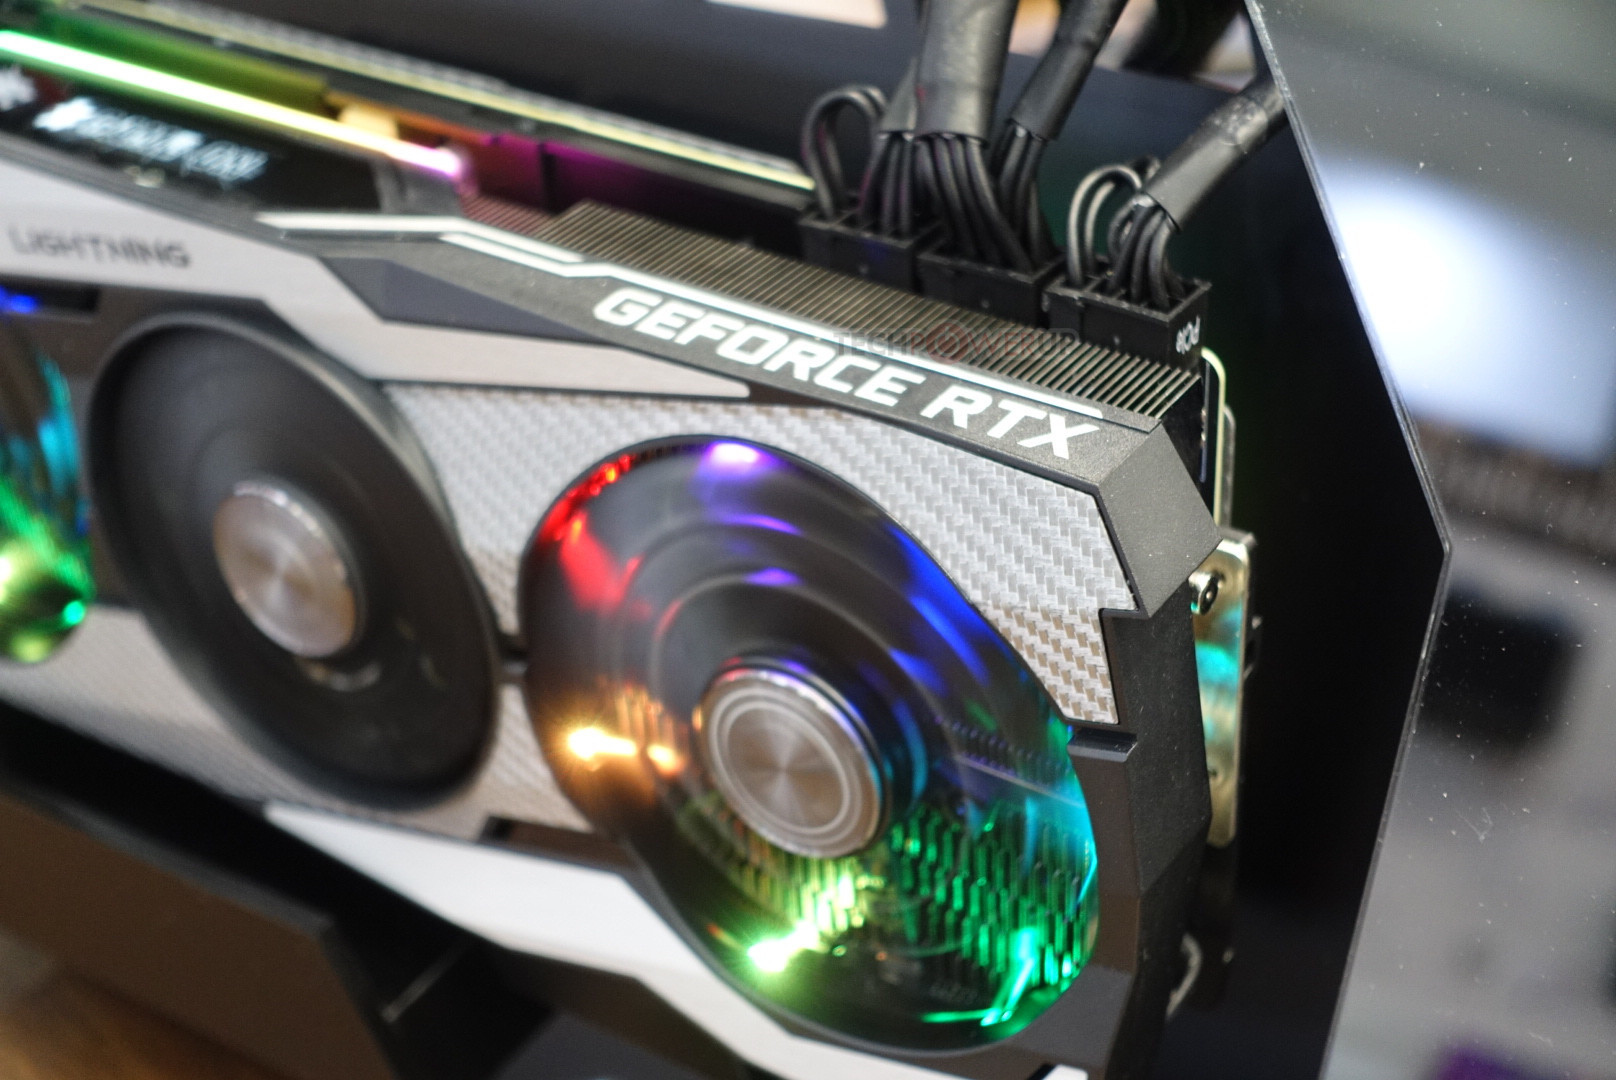 MSI RTX 2080 Ti Lightning 10th Anniversary Edition pictured